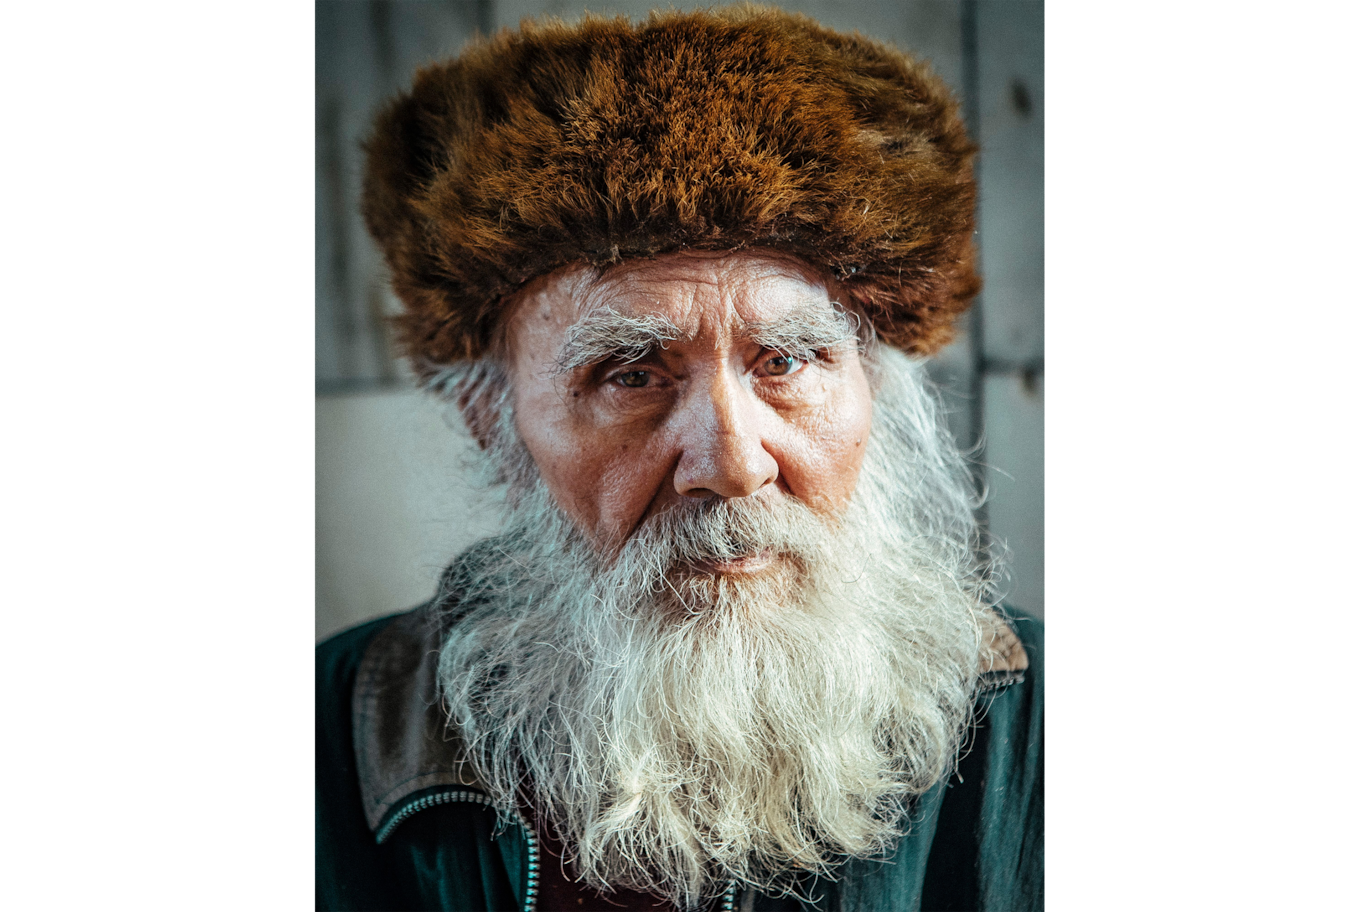 dennis schmelz sony alpha 7s2 portrait of an hold man with a beard and a chapka